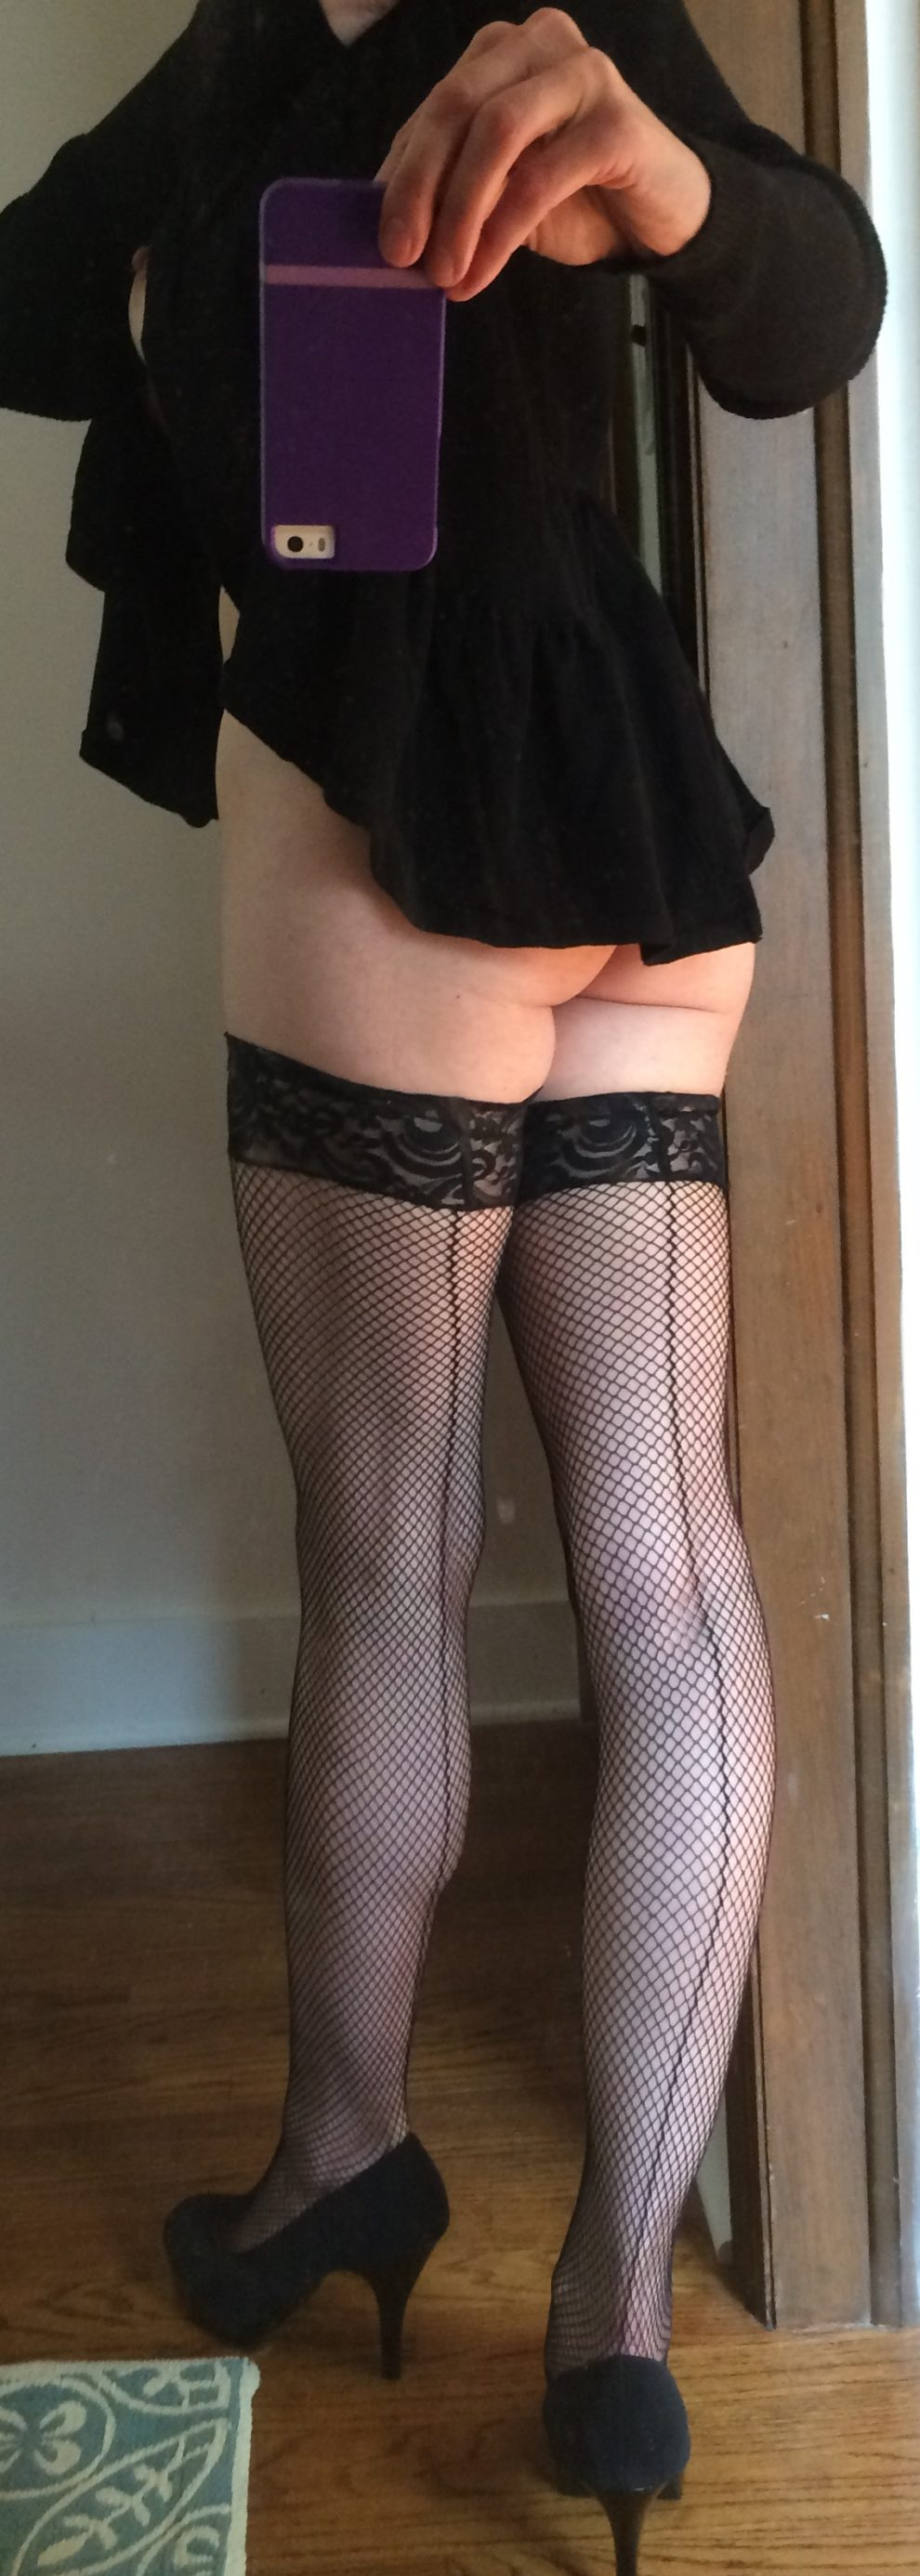 (F)or fans of fishnets ;)